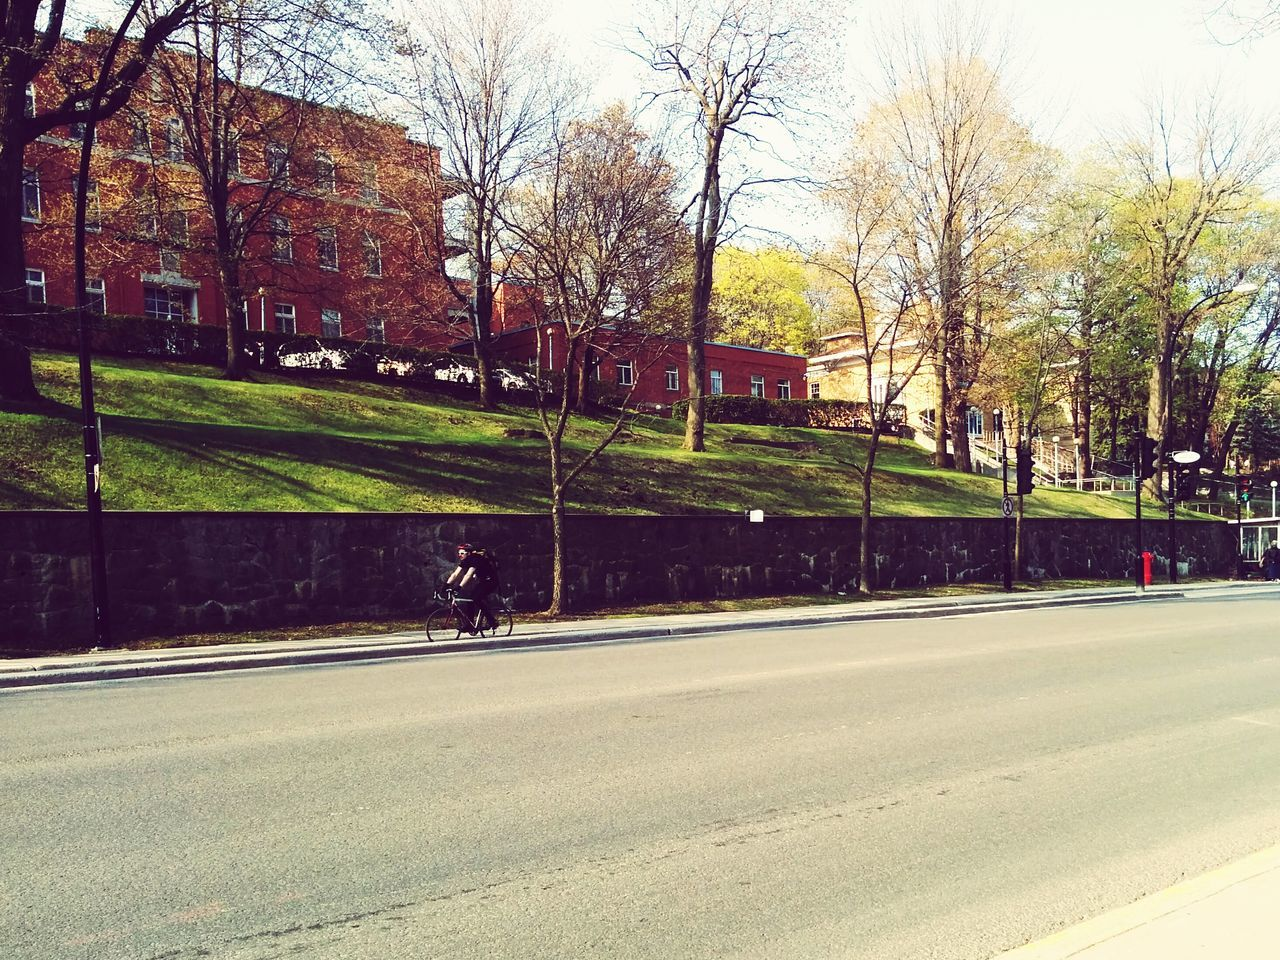 road, tree, transportation, street, bare tree, outdoors, day, no people, car, nature, sport, grass, city, sky